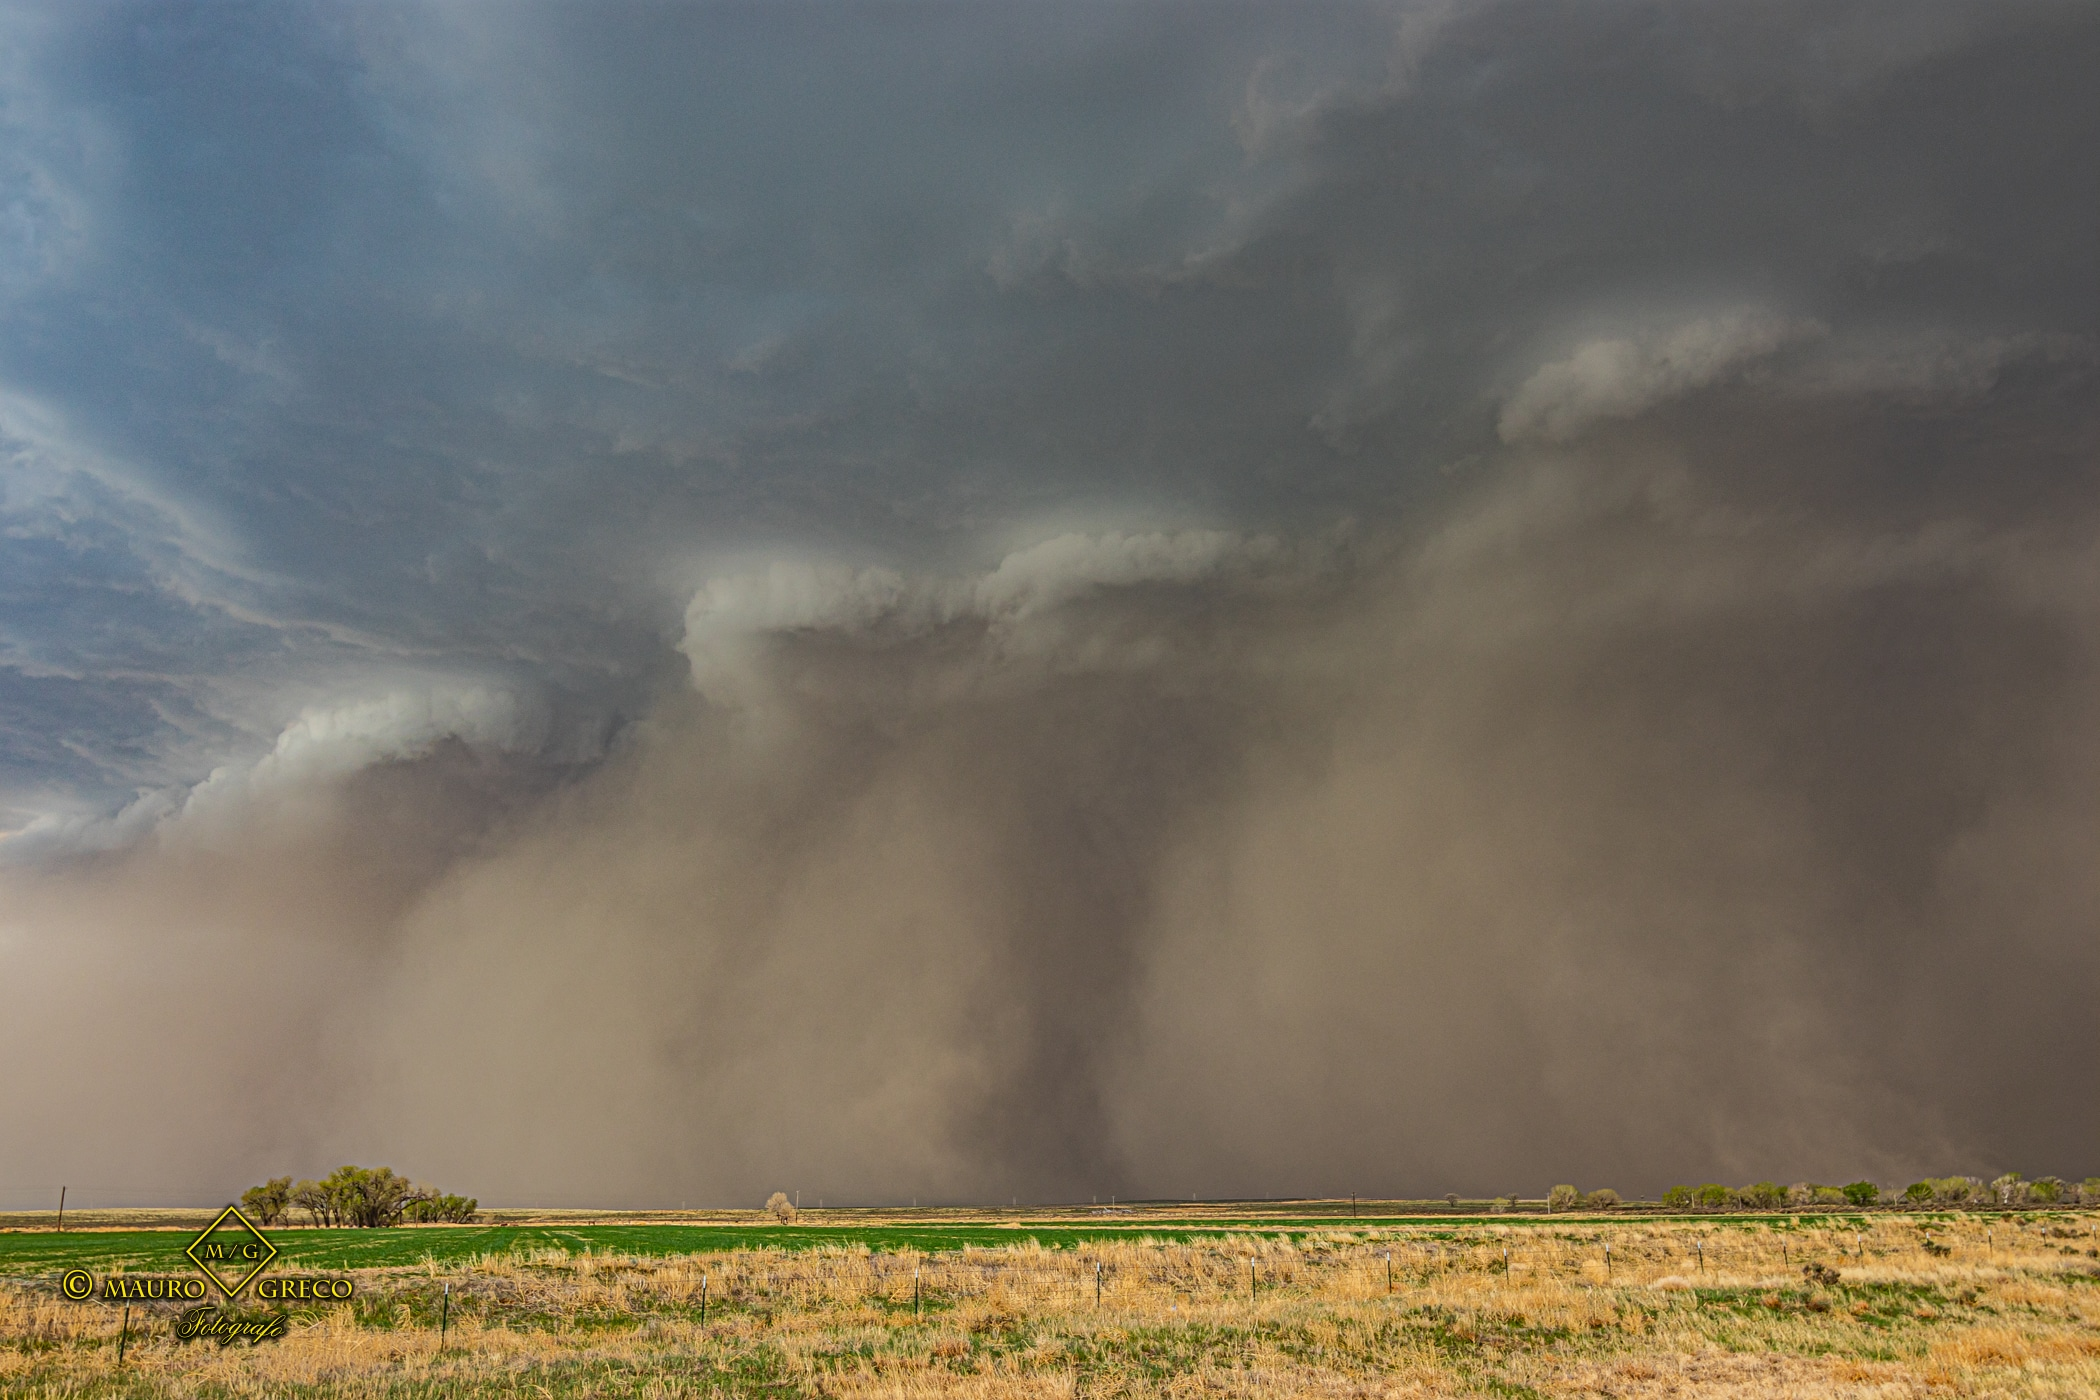 May 02 2021 Sand storm and tornado warned supercell close to Lamar Colorado - Tornado Tour StormWind